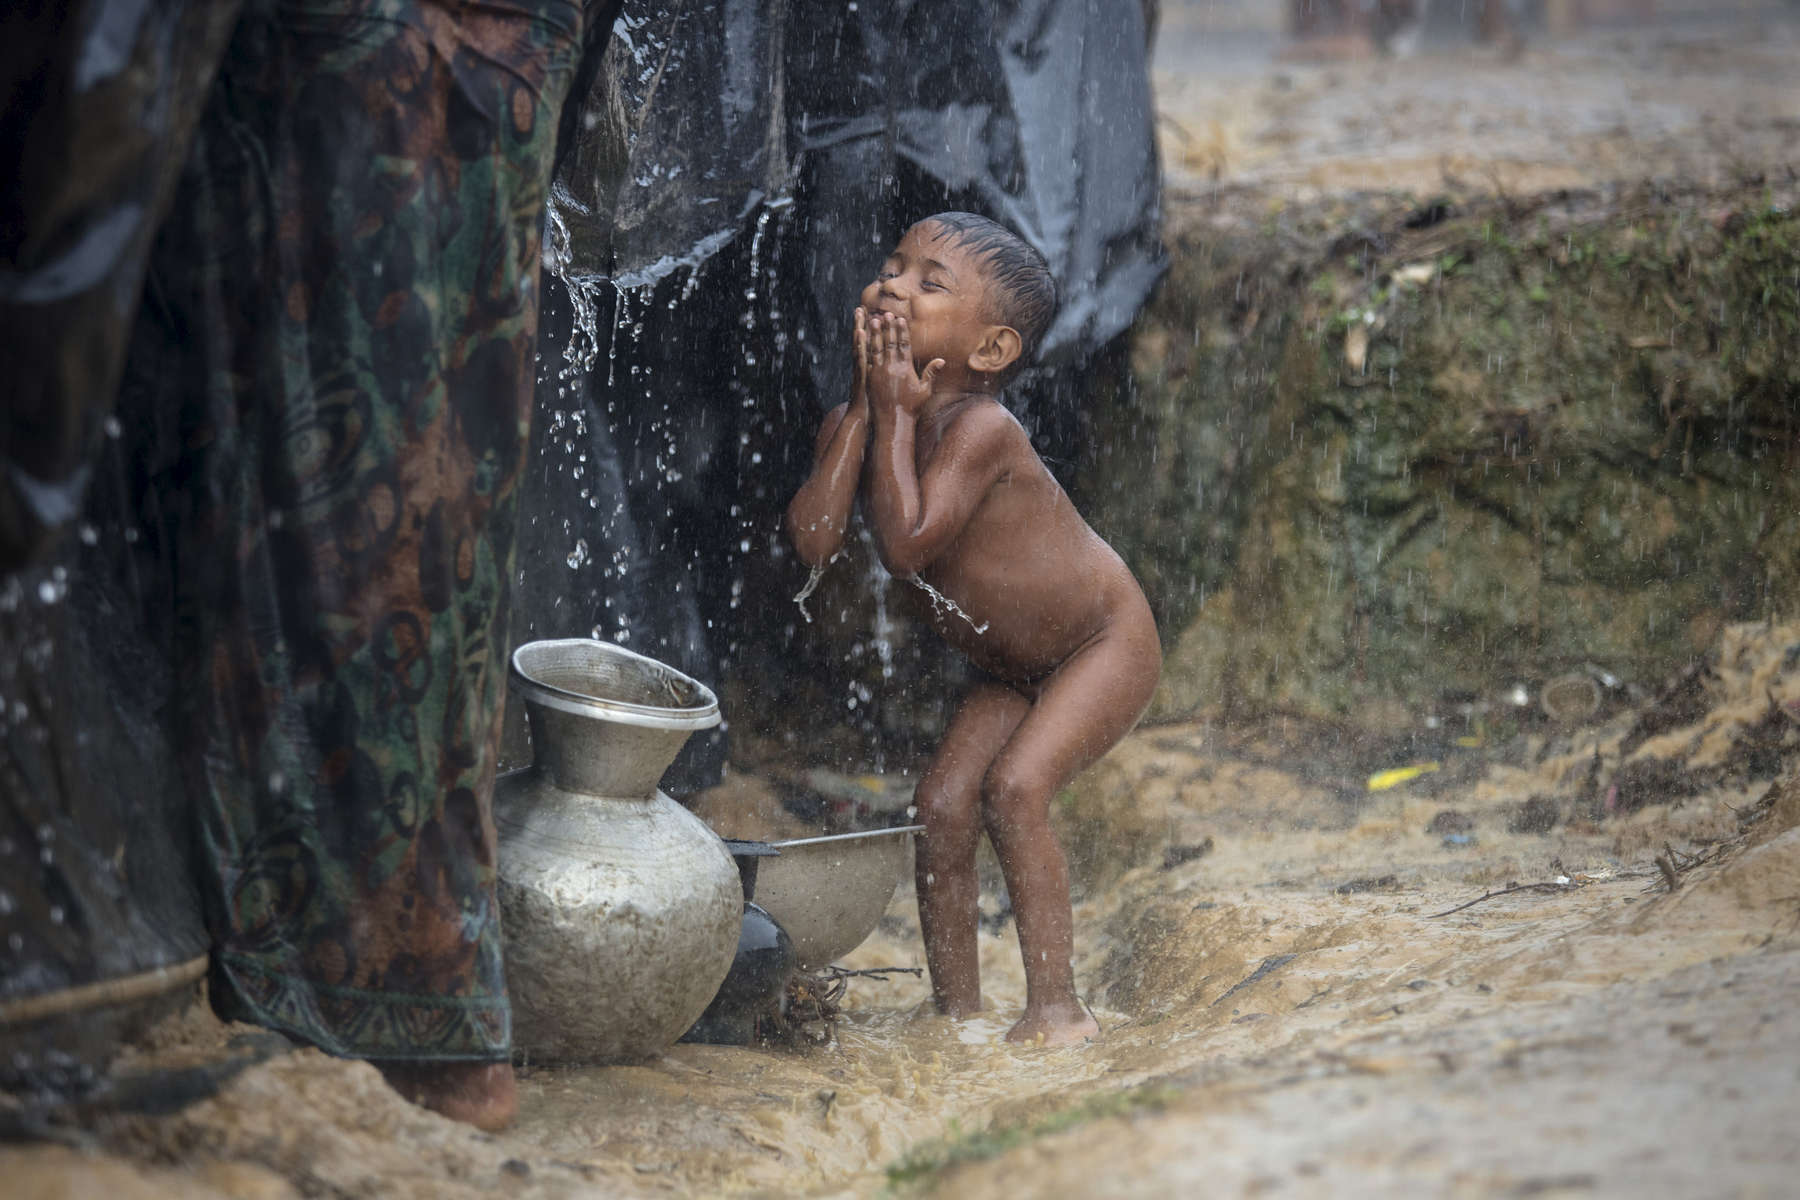 KUTUPALONG, BANGLADESH - OCTOBER 13: A Rohingya boy takes advantage of monsoon rains to bathe himself October 13, in Kutuplaong refugee camp , Cox's Bazar, Bangladesh. For years Buddhist majority Myanmar has struggled to deal with a deeply rooted hatred towards the Rohingya in western Rakhine state. The Muslim ethnic minority were always considered illegal immigrants from Bangladesh and denied the rights of citizenship. The refugee emergency unfolded in late August after an attack on state security forces by Rohingya insurgents, triggering a brutal military crackdown that has forced more than 650,00 of the country fleeing to neighboring Bangladesh creating the fastest cross-border exodus ever witnessed.